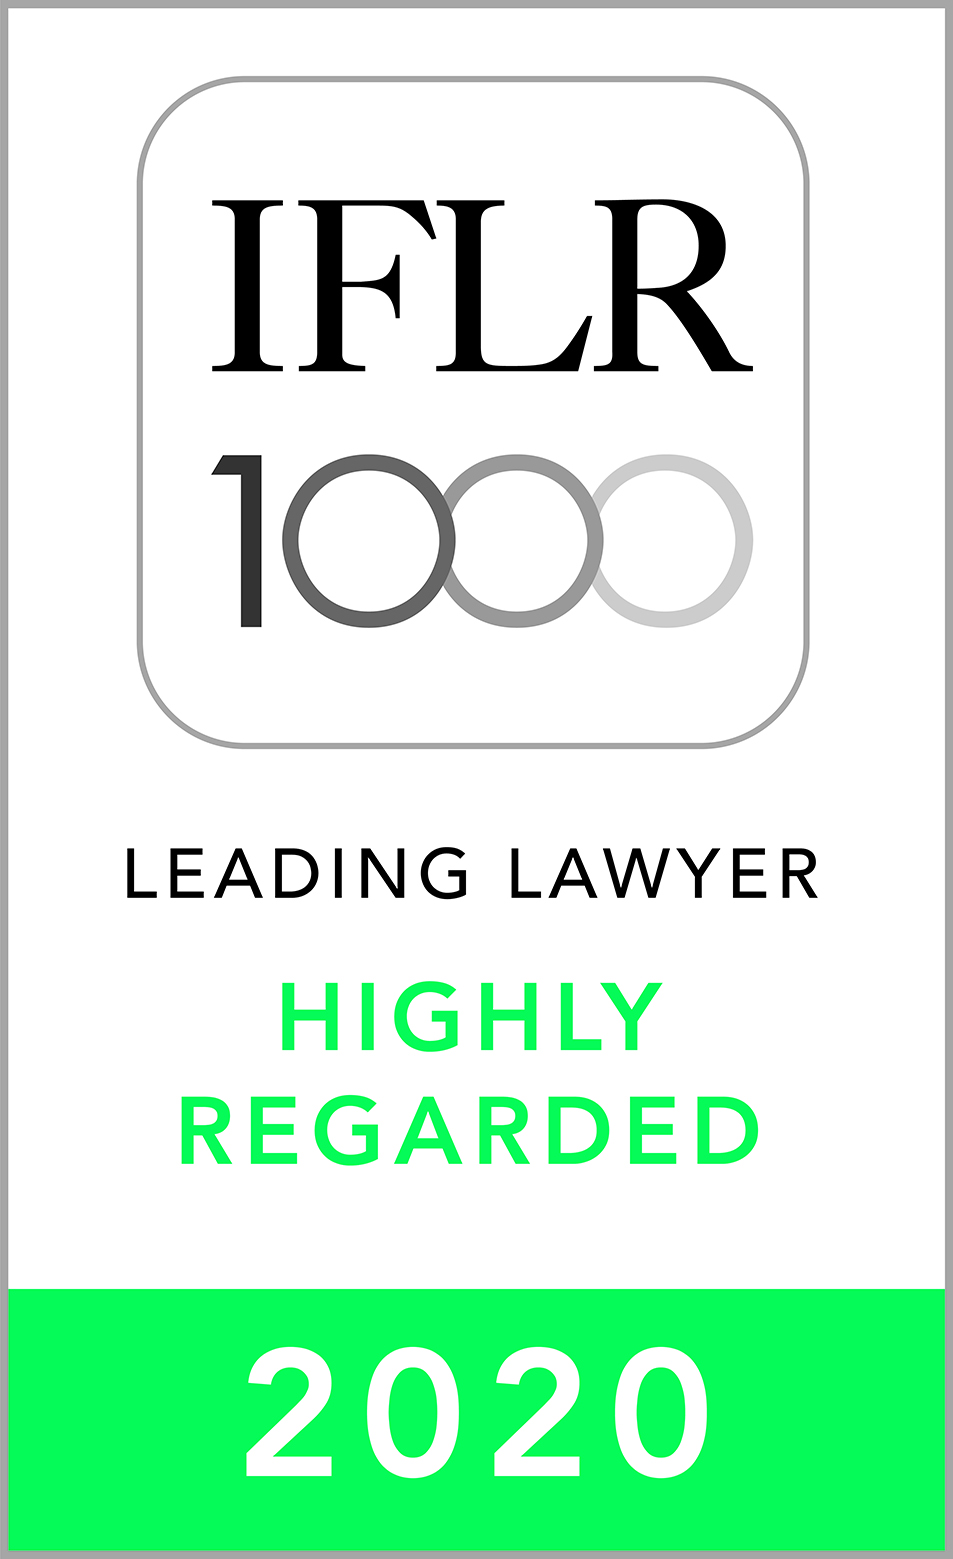 Highly Regarded Leading Lawyer in Financial & Corporate Law by IFLR1000, 2020